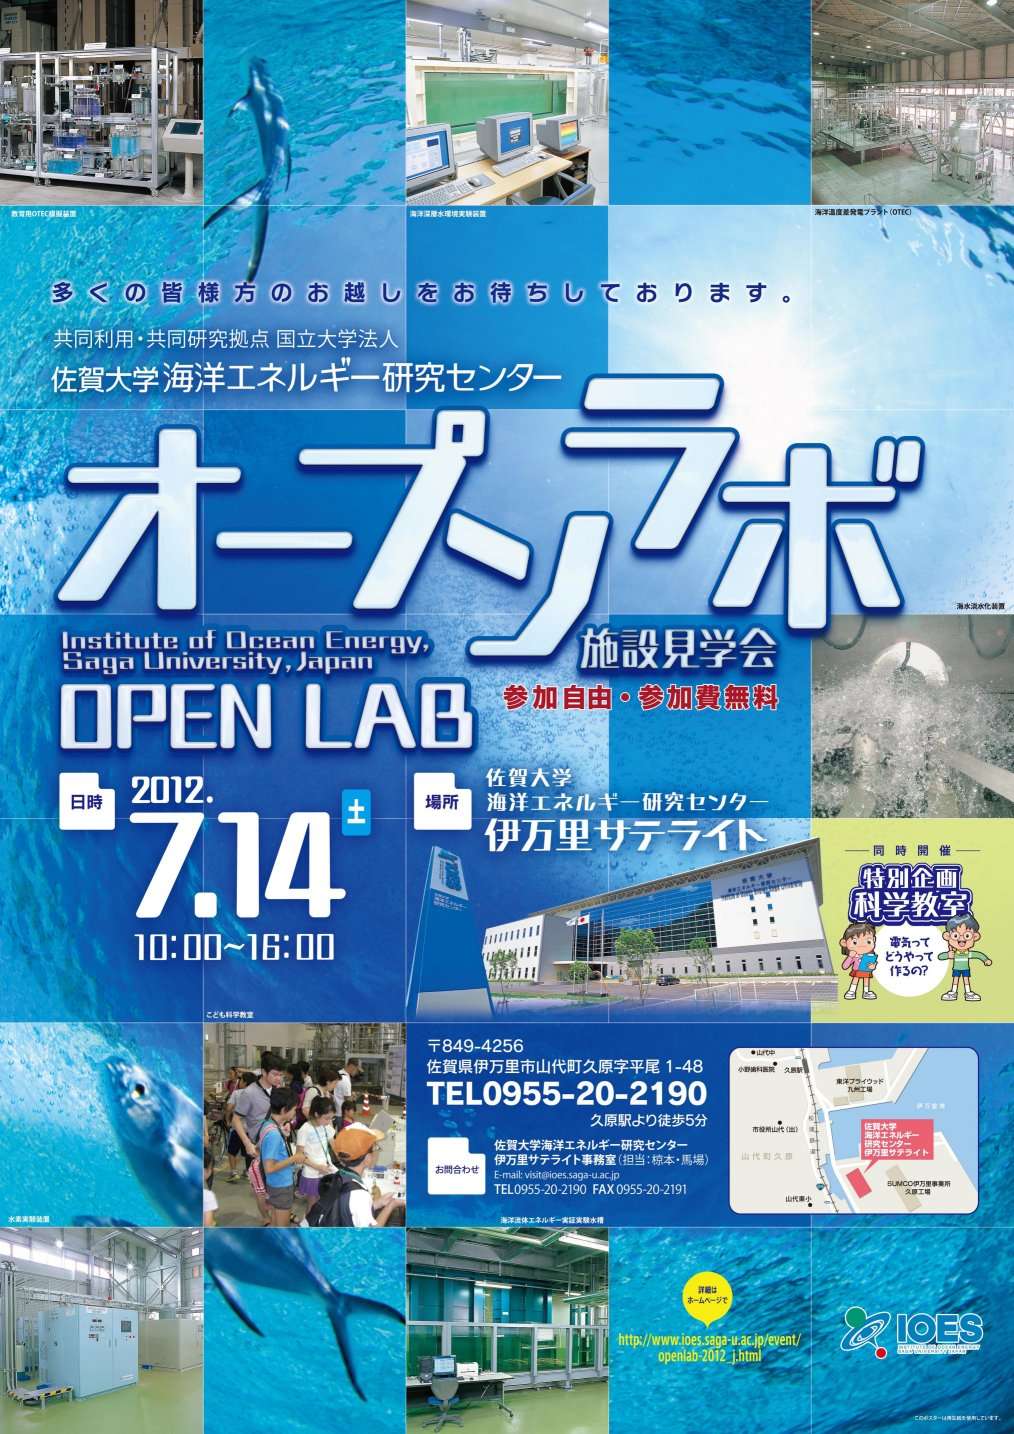 openlab2012-poster.jpg